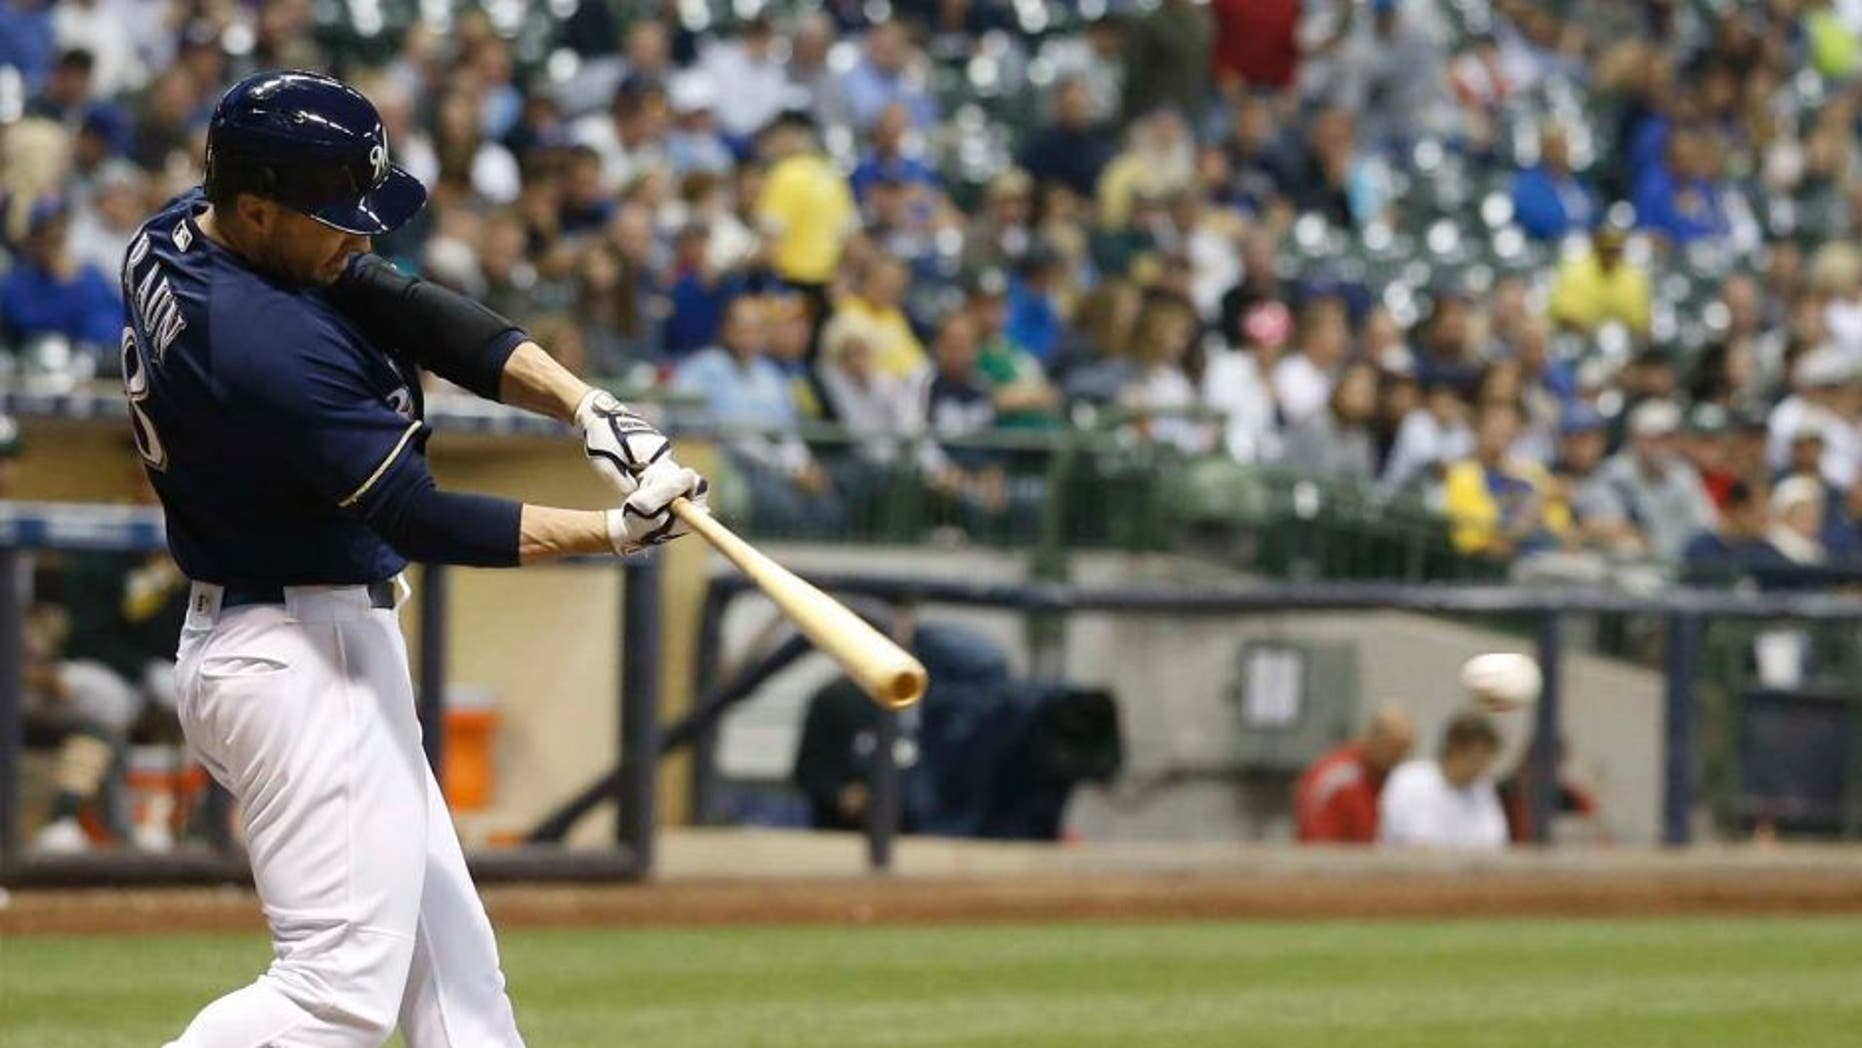 Tuesday, June 7: The Milwaukee Brewers' Ryan Braun hits a single for his 1,500th career hit during the sixth inning against the Oakland Athletics in Milwaukee. The Brewers won 5-4.